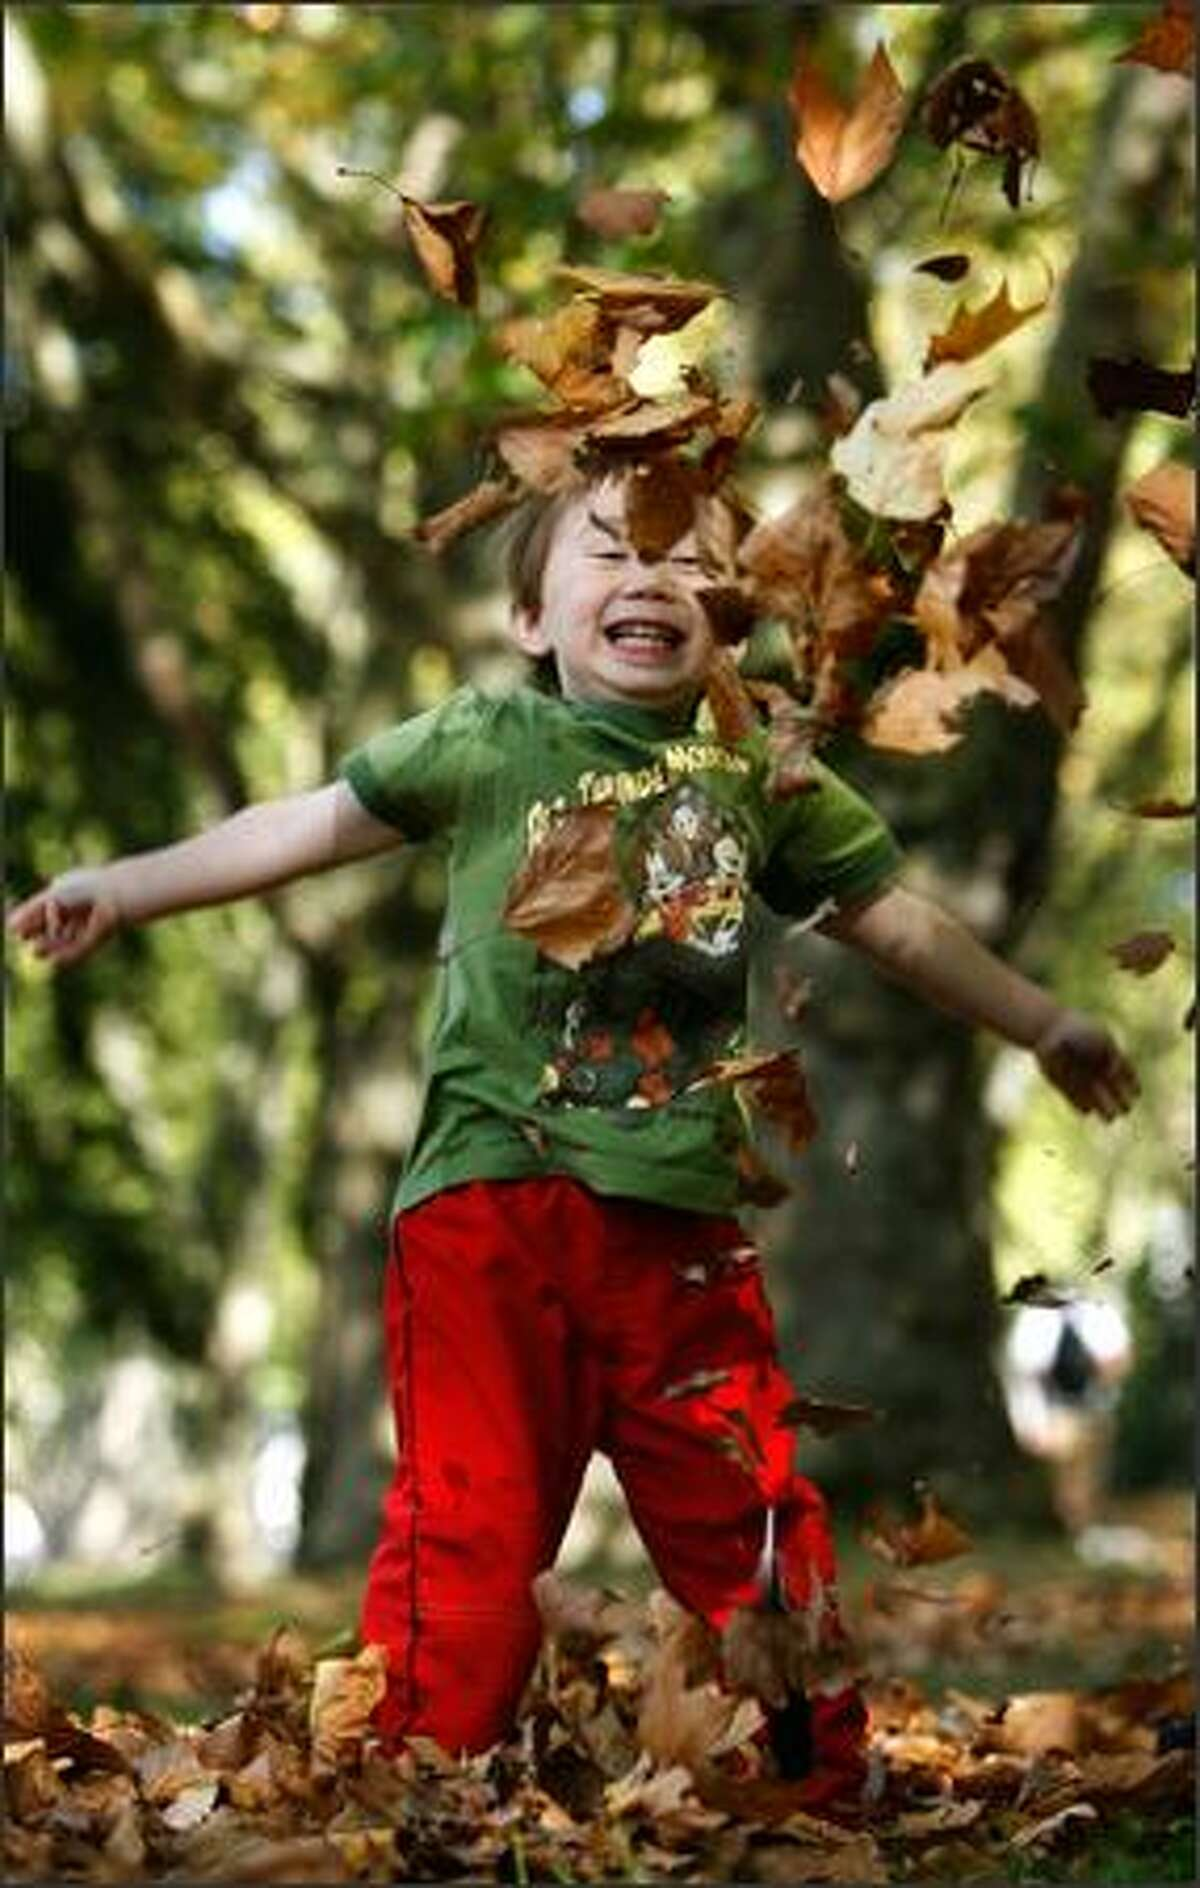 Tomoe Millette, 3 1/2, delights in tossing leaves in the air while enjoying a pleasant fall day as he plays on the University of Washington campus. Tomoe was with his mother, Yumiko Millette of Seattle, who was between classes Monday.